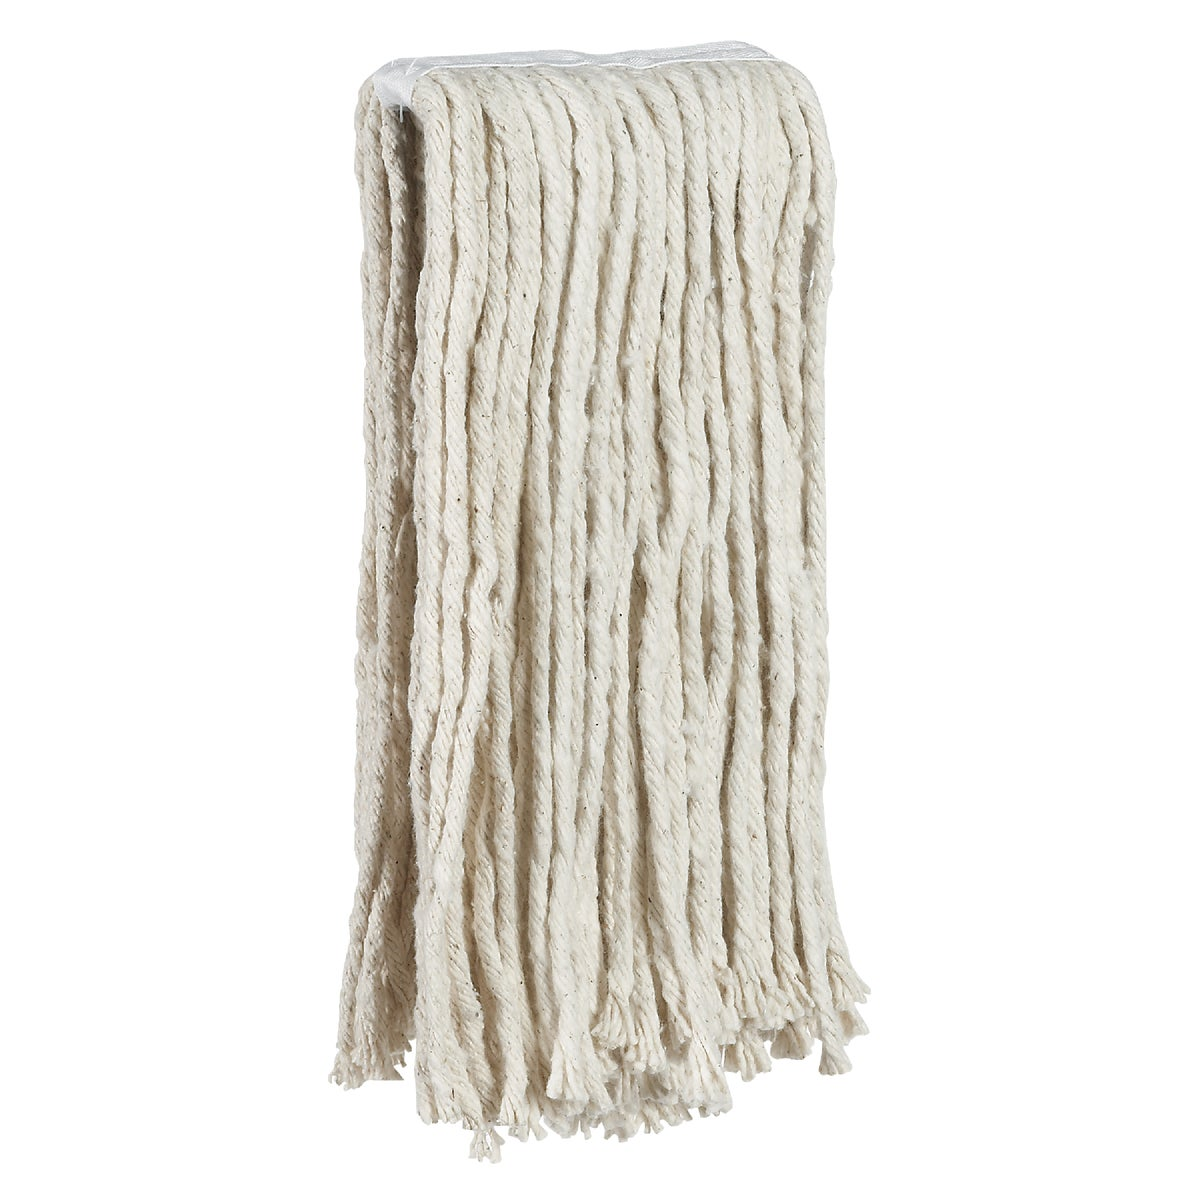 12OZ COTTON MOP - 642320 by Nexstep Commercial